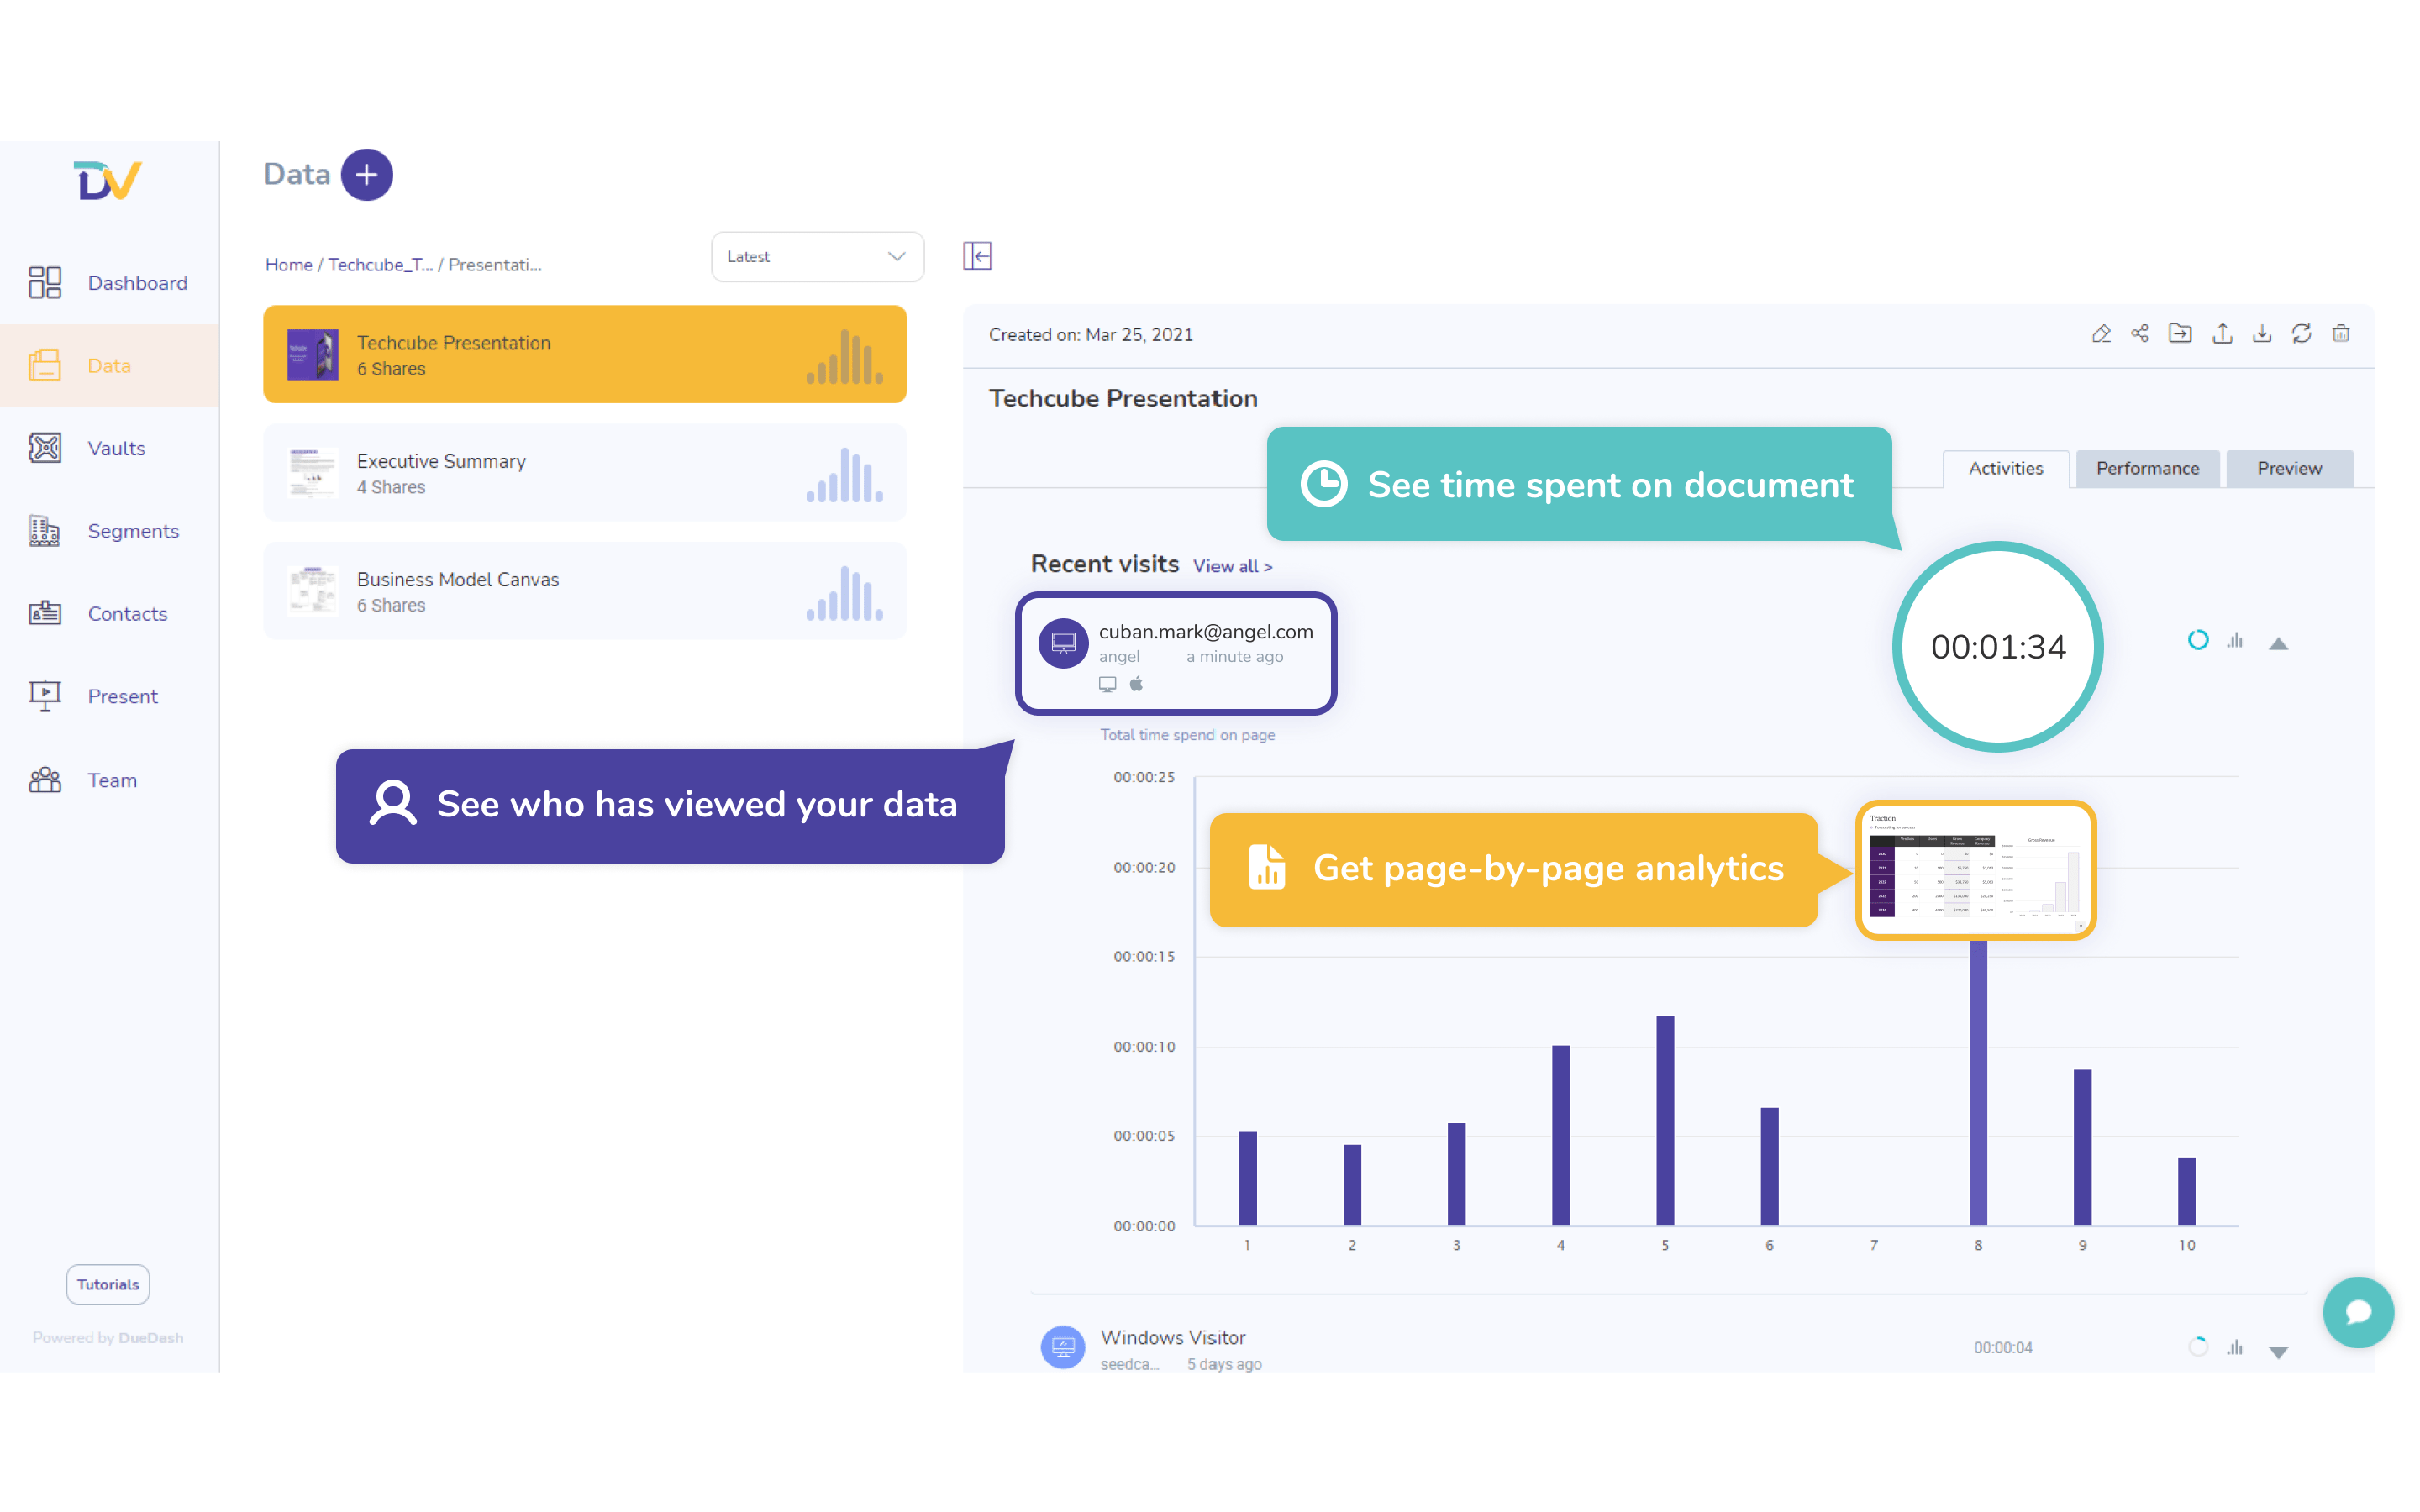 Data - Page-by-page data analytics